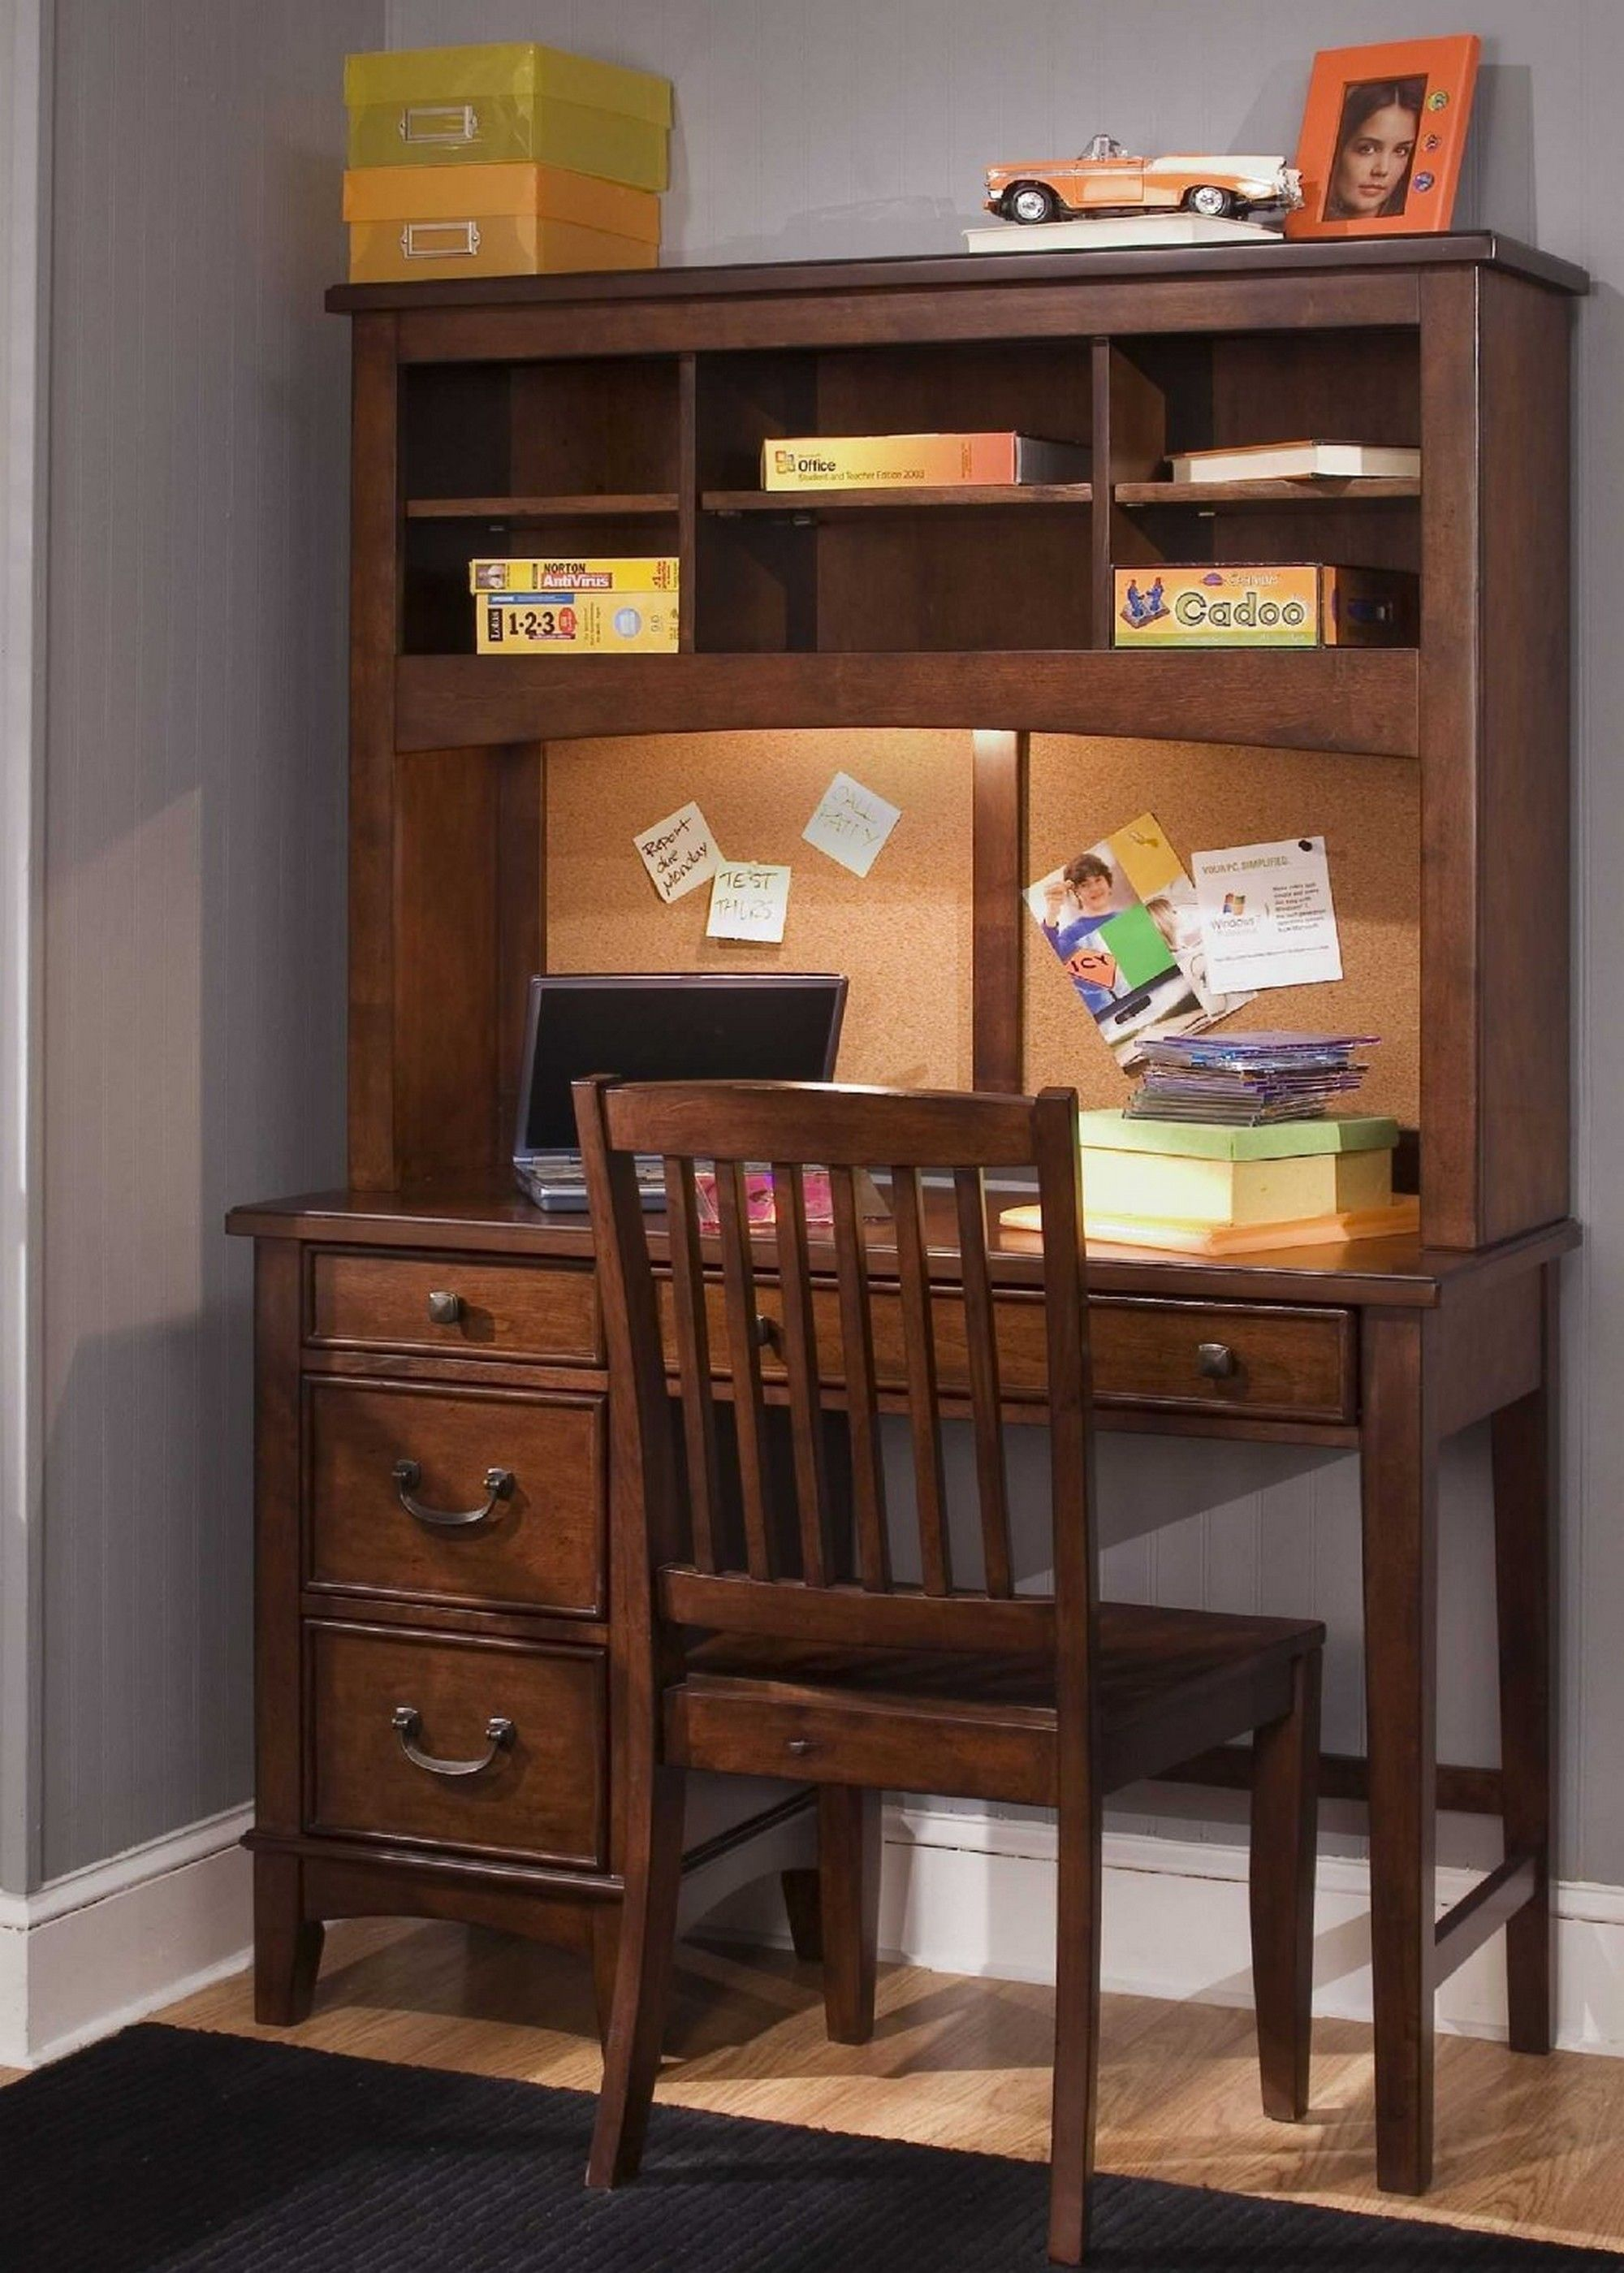 Corner Desk Is Needed In Both Home And Office Because It Can Maximize The Small Space Becomes More Useful C Study Table Designs Study Table Liberty Furniture